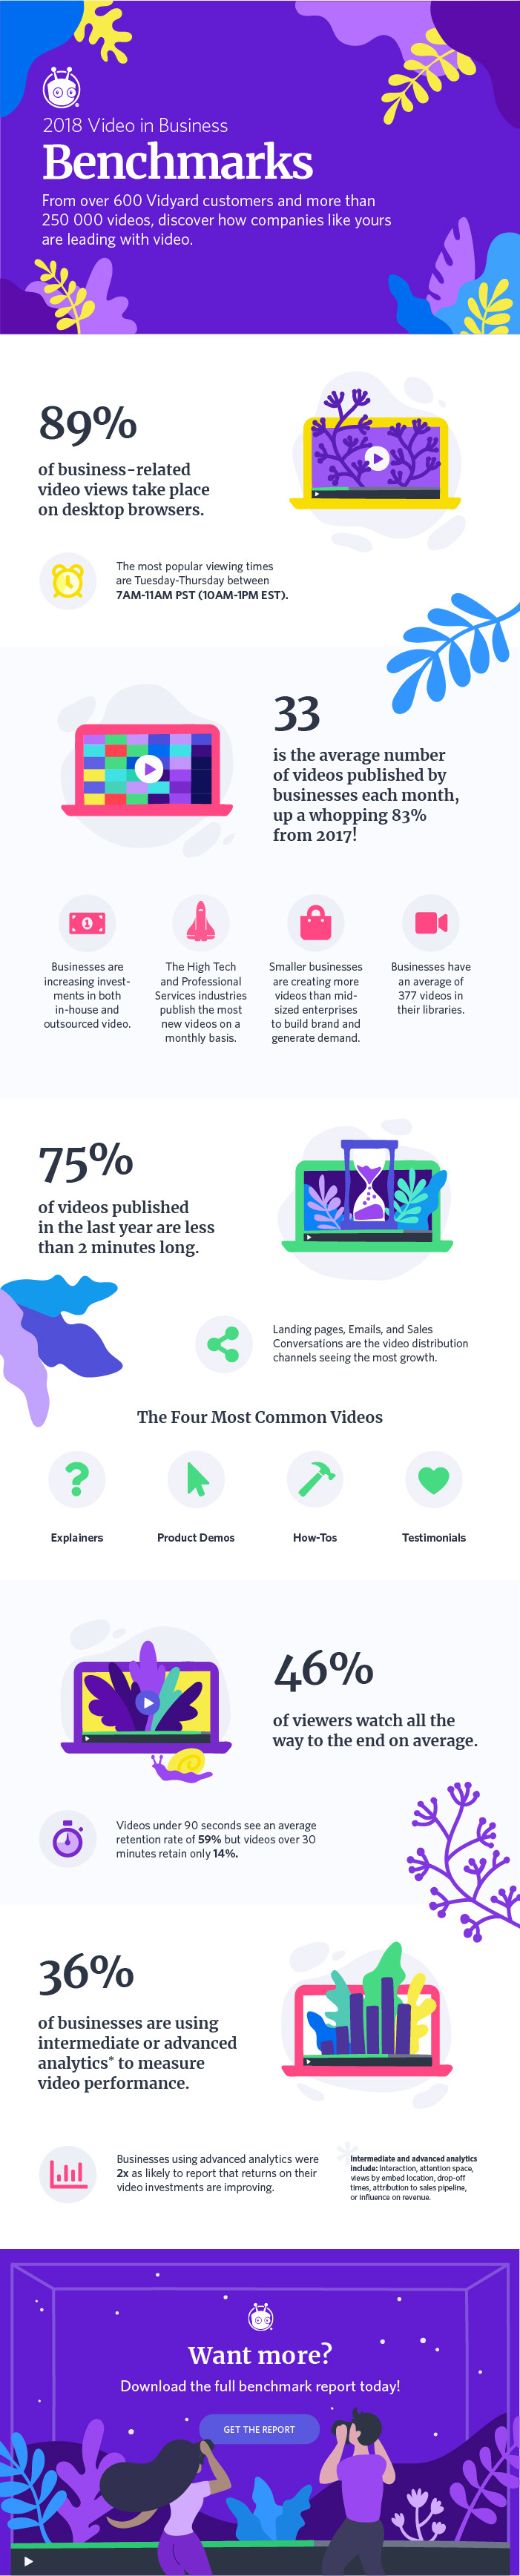 2018 Benchmark Report Infographic by Vidyard